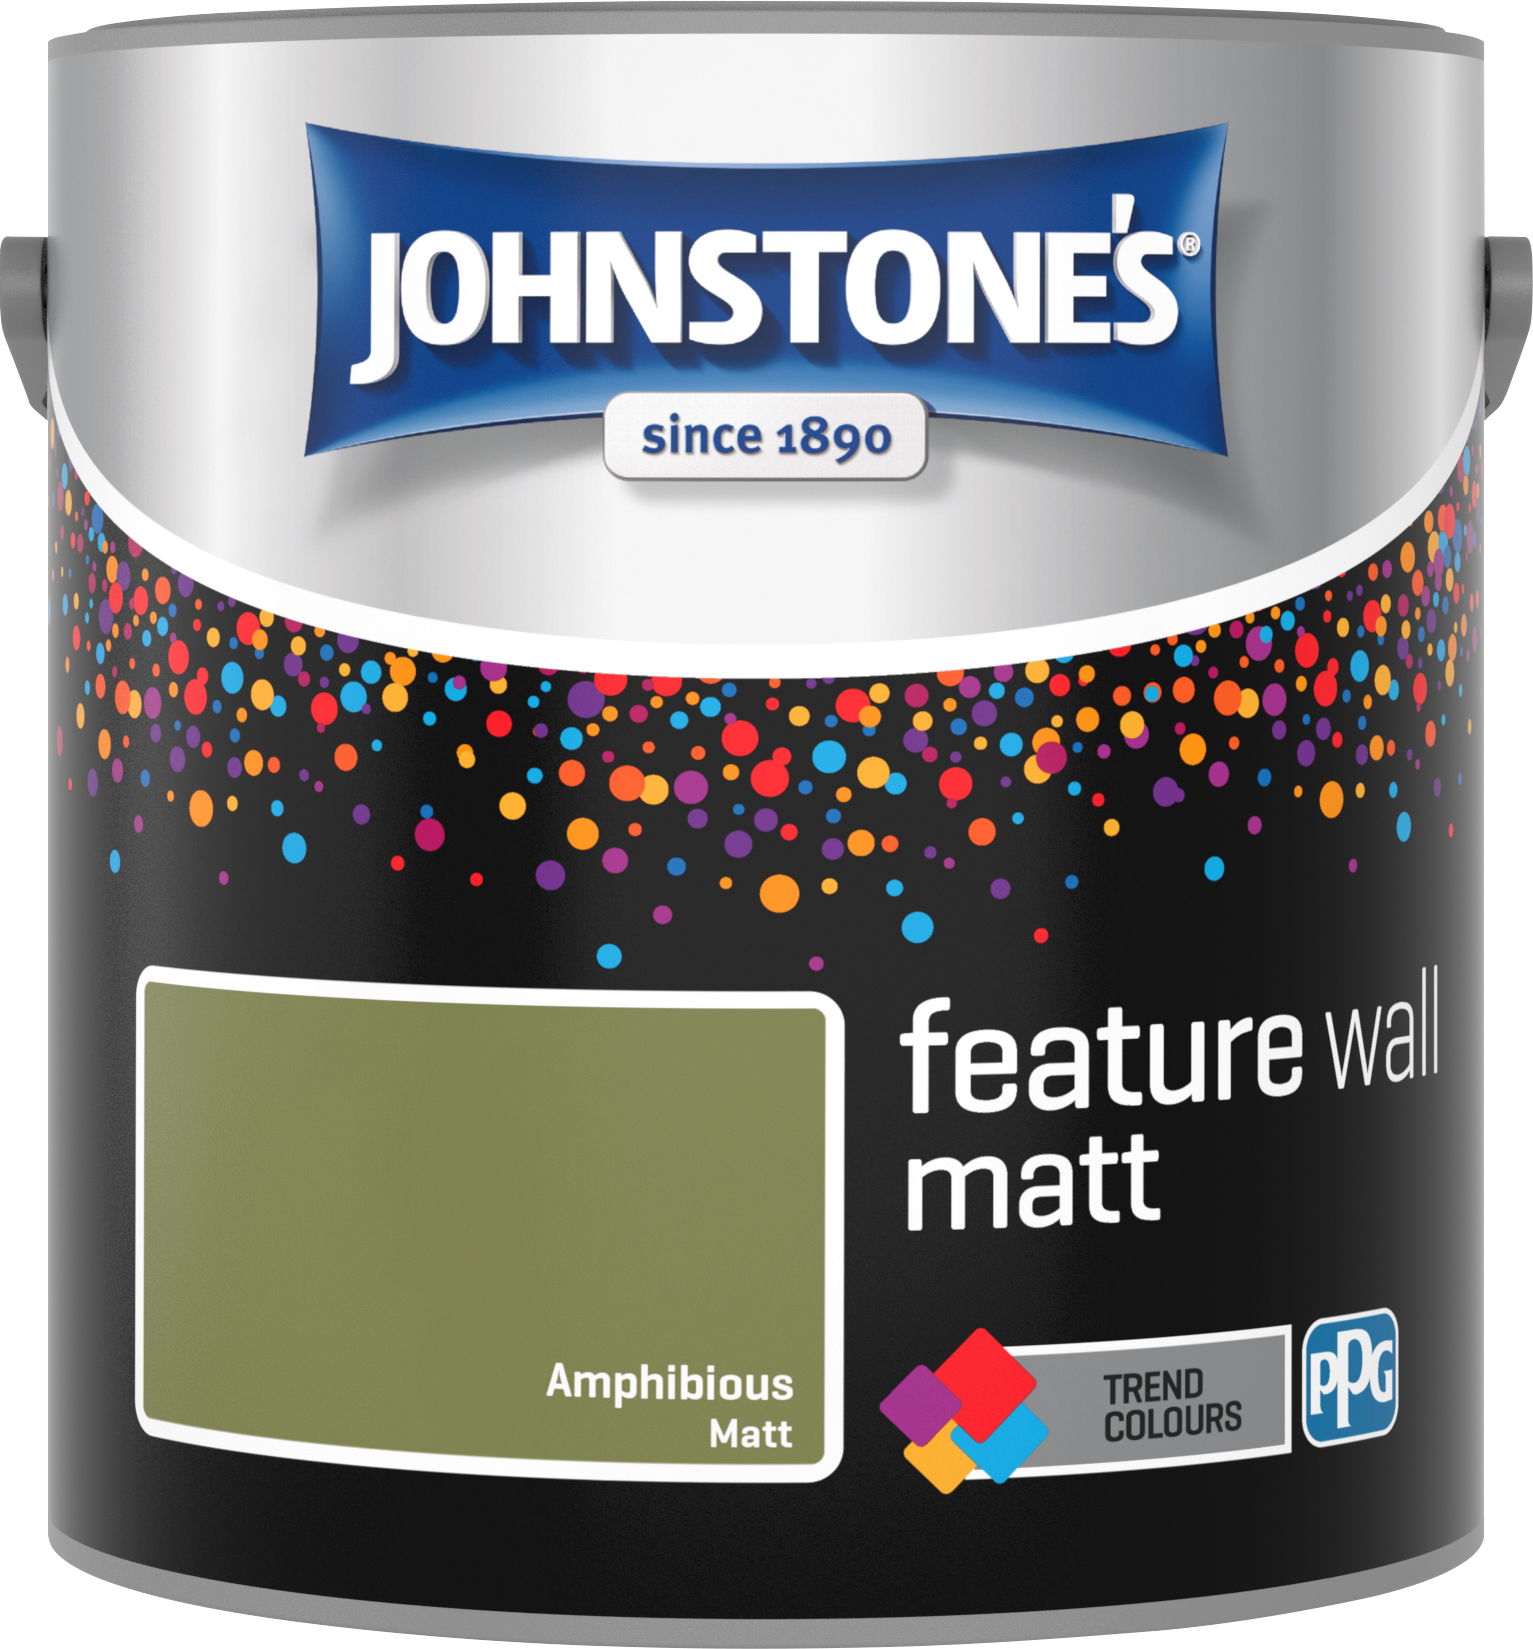 Johnstone's 2.5 Litre Feature Wall Matt Emulsion Paint - Amphibious